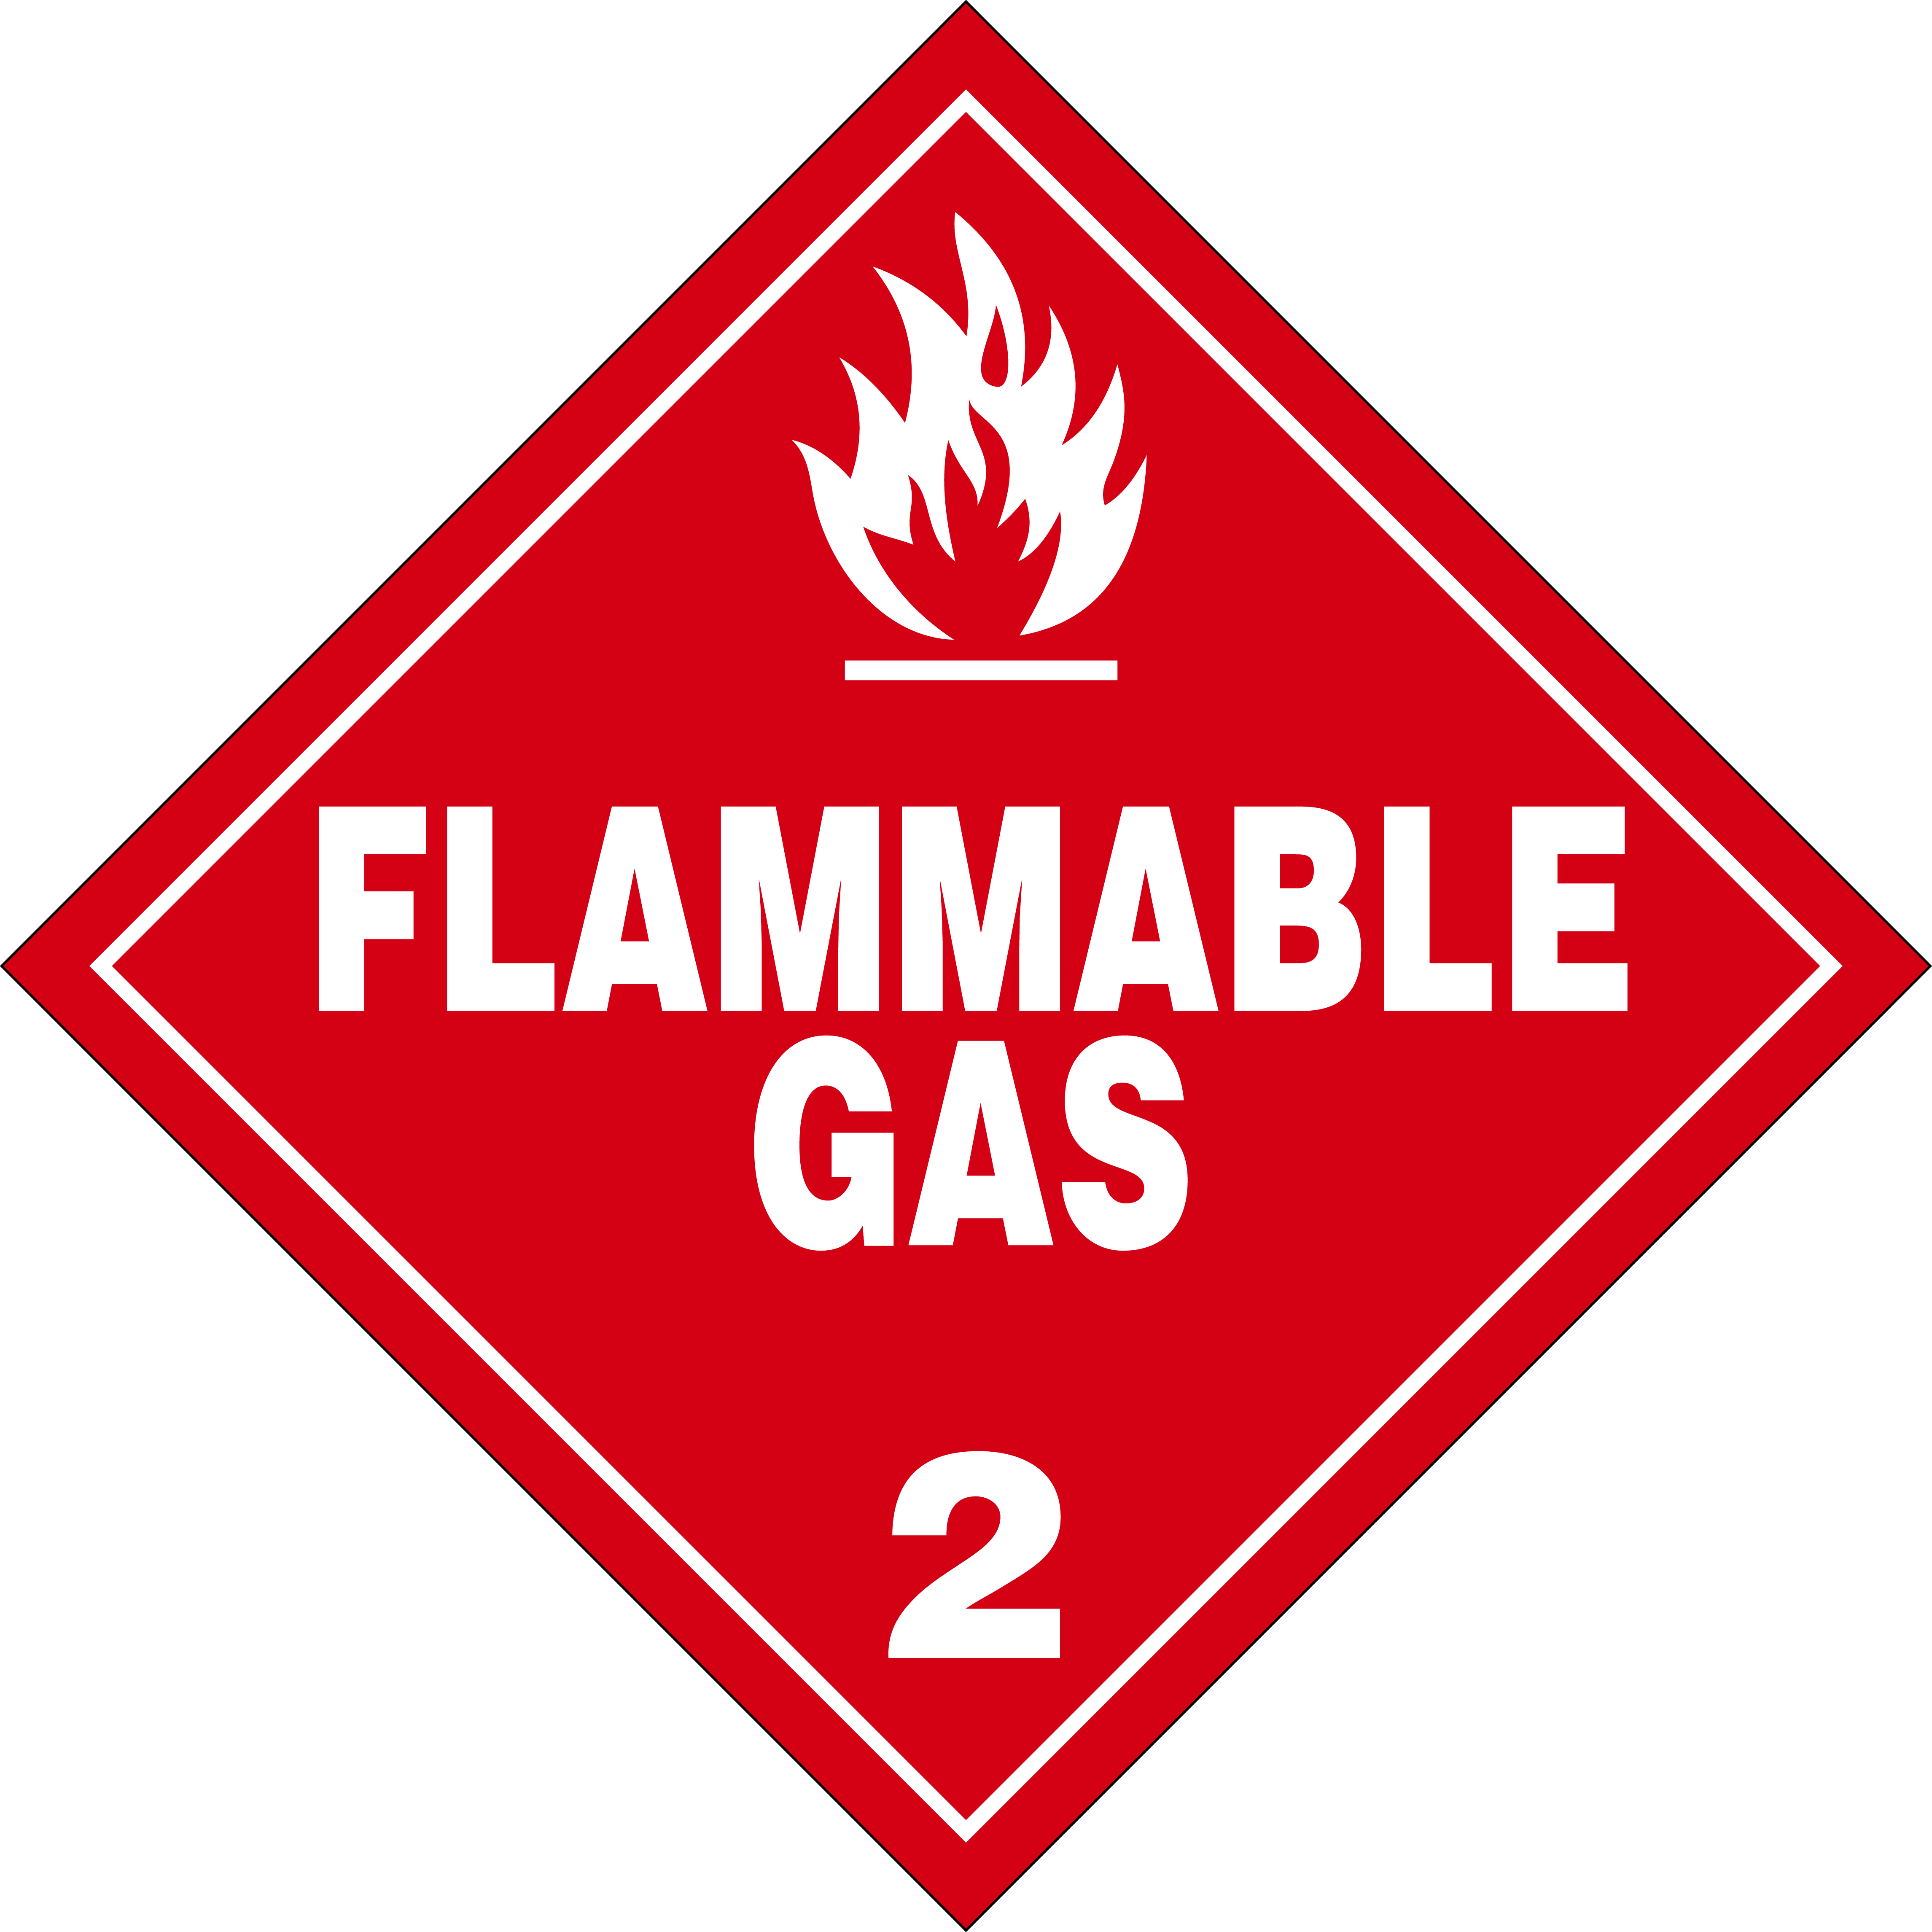 Corrosive And Flammable Signs Symbols.